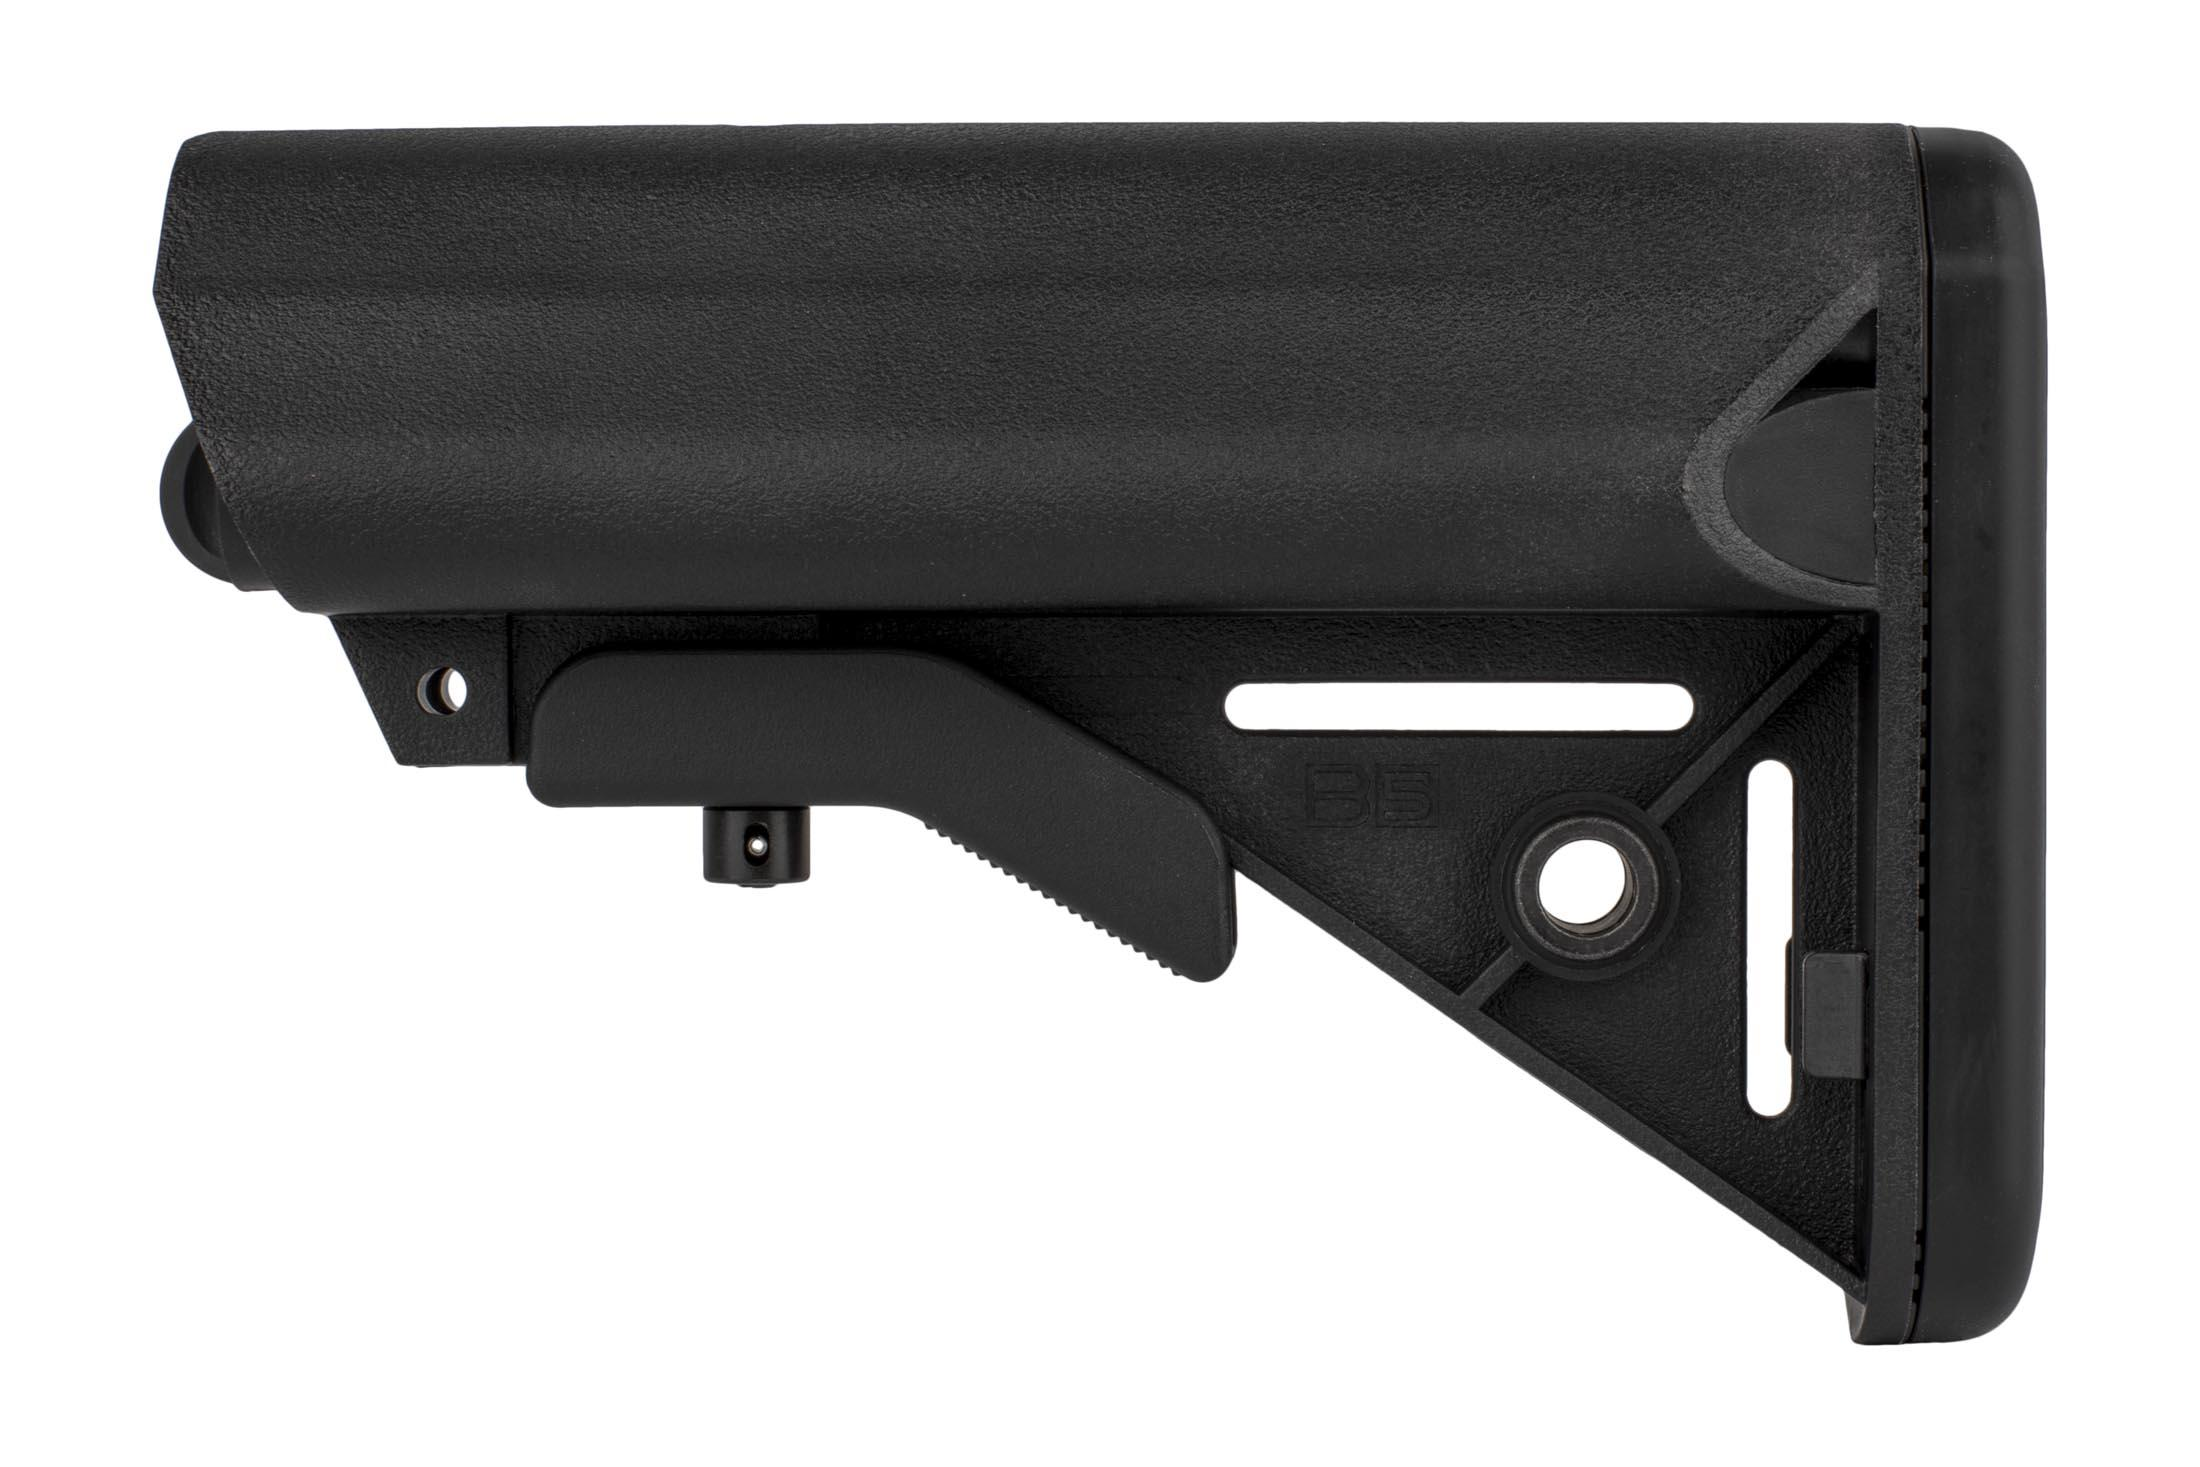 B5 Systems SOPMOD AR-15 Polymer Stock with Quick Detach Mount MIL-SPEC - Black